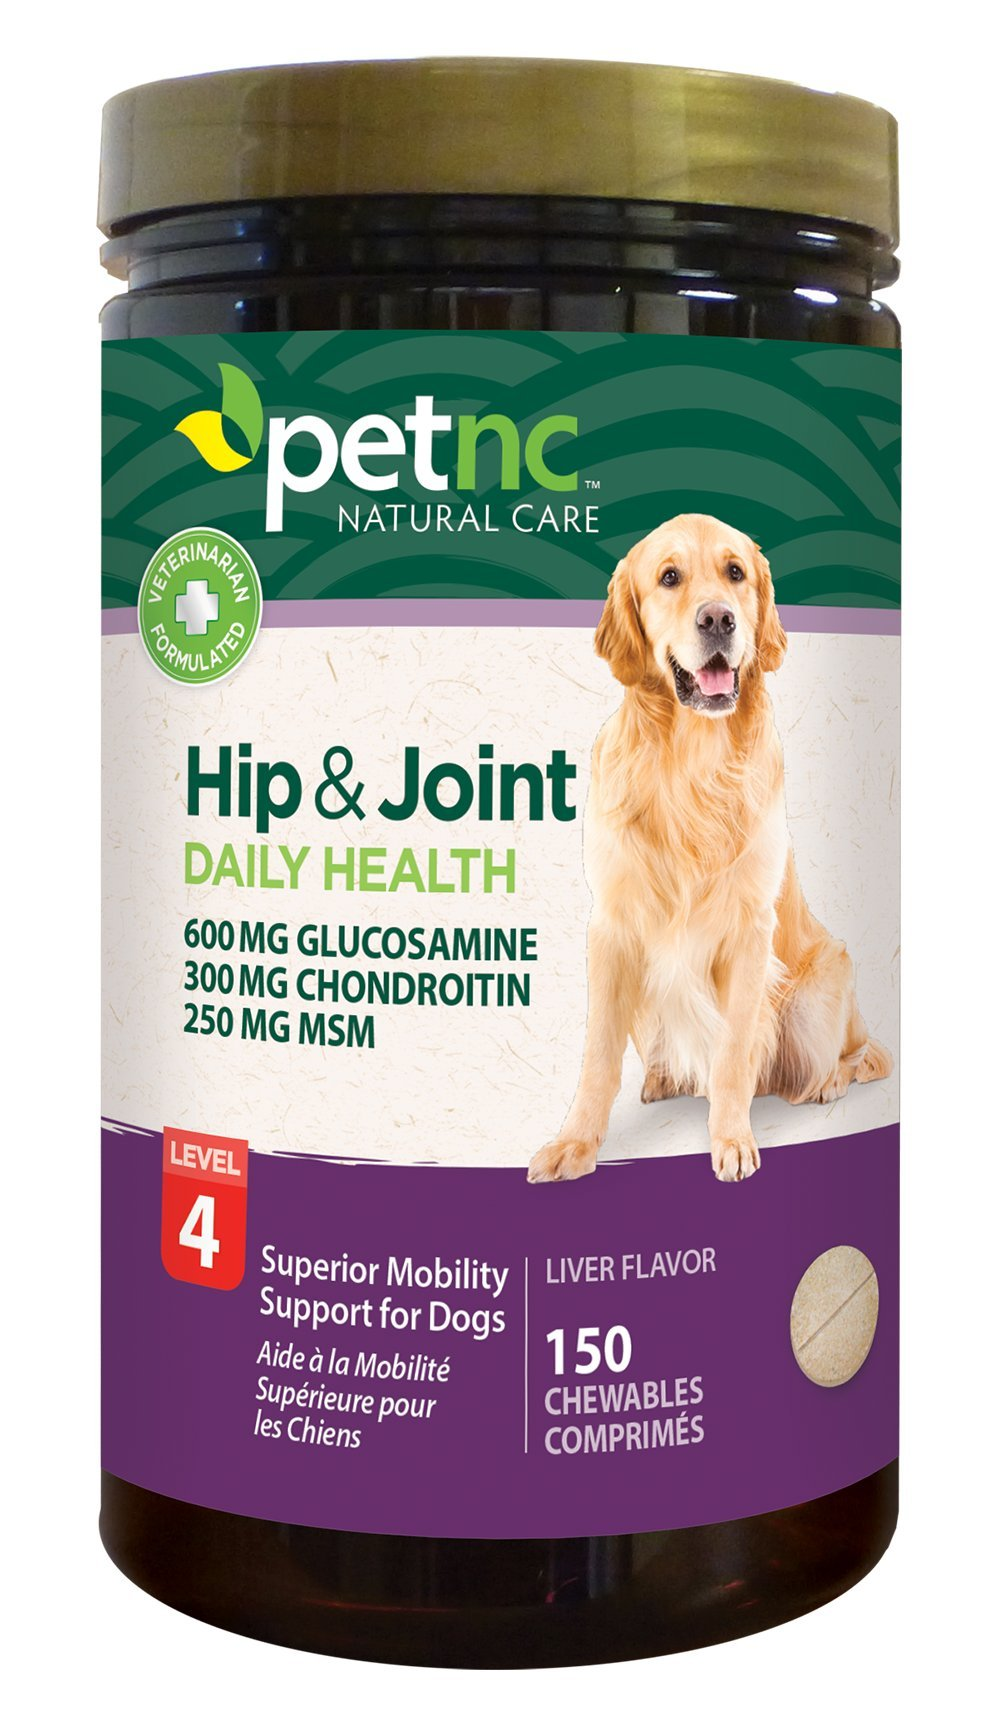 PetNC Natural Care Hip & Joint Health level 4